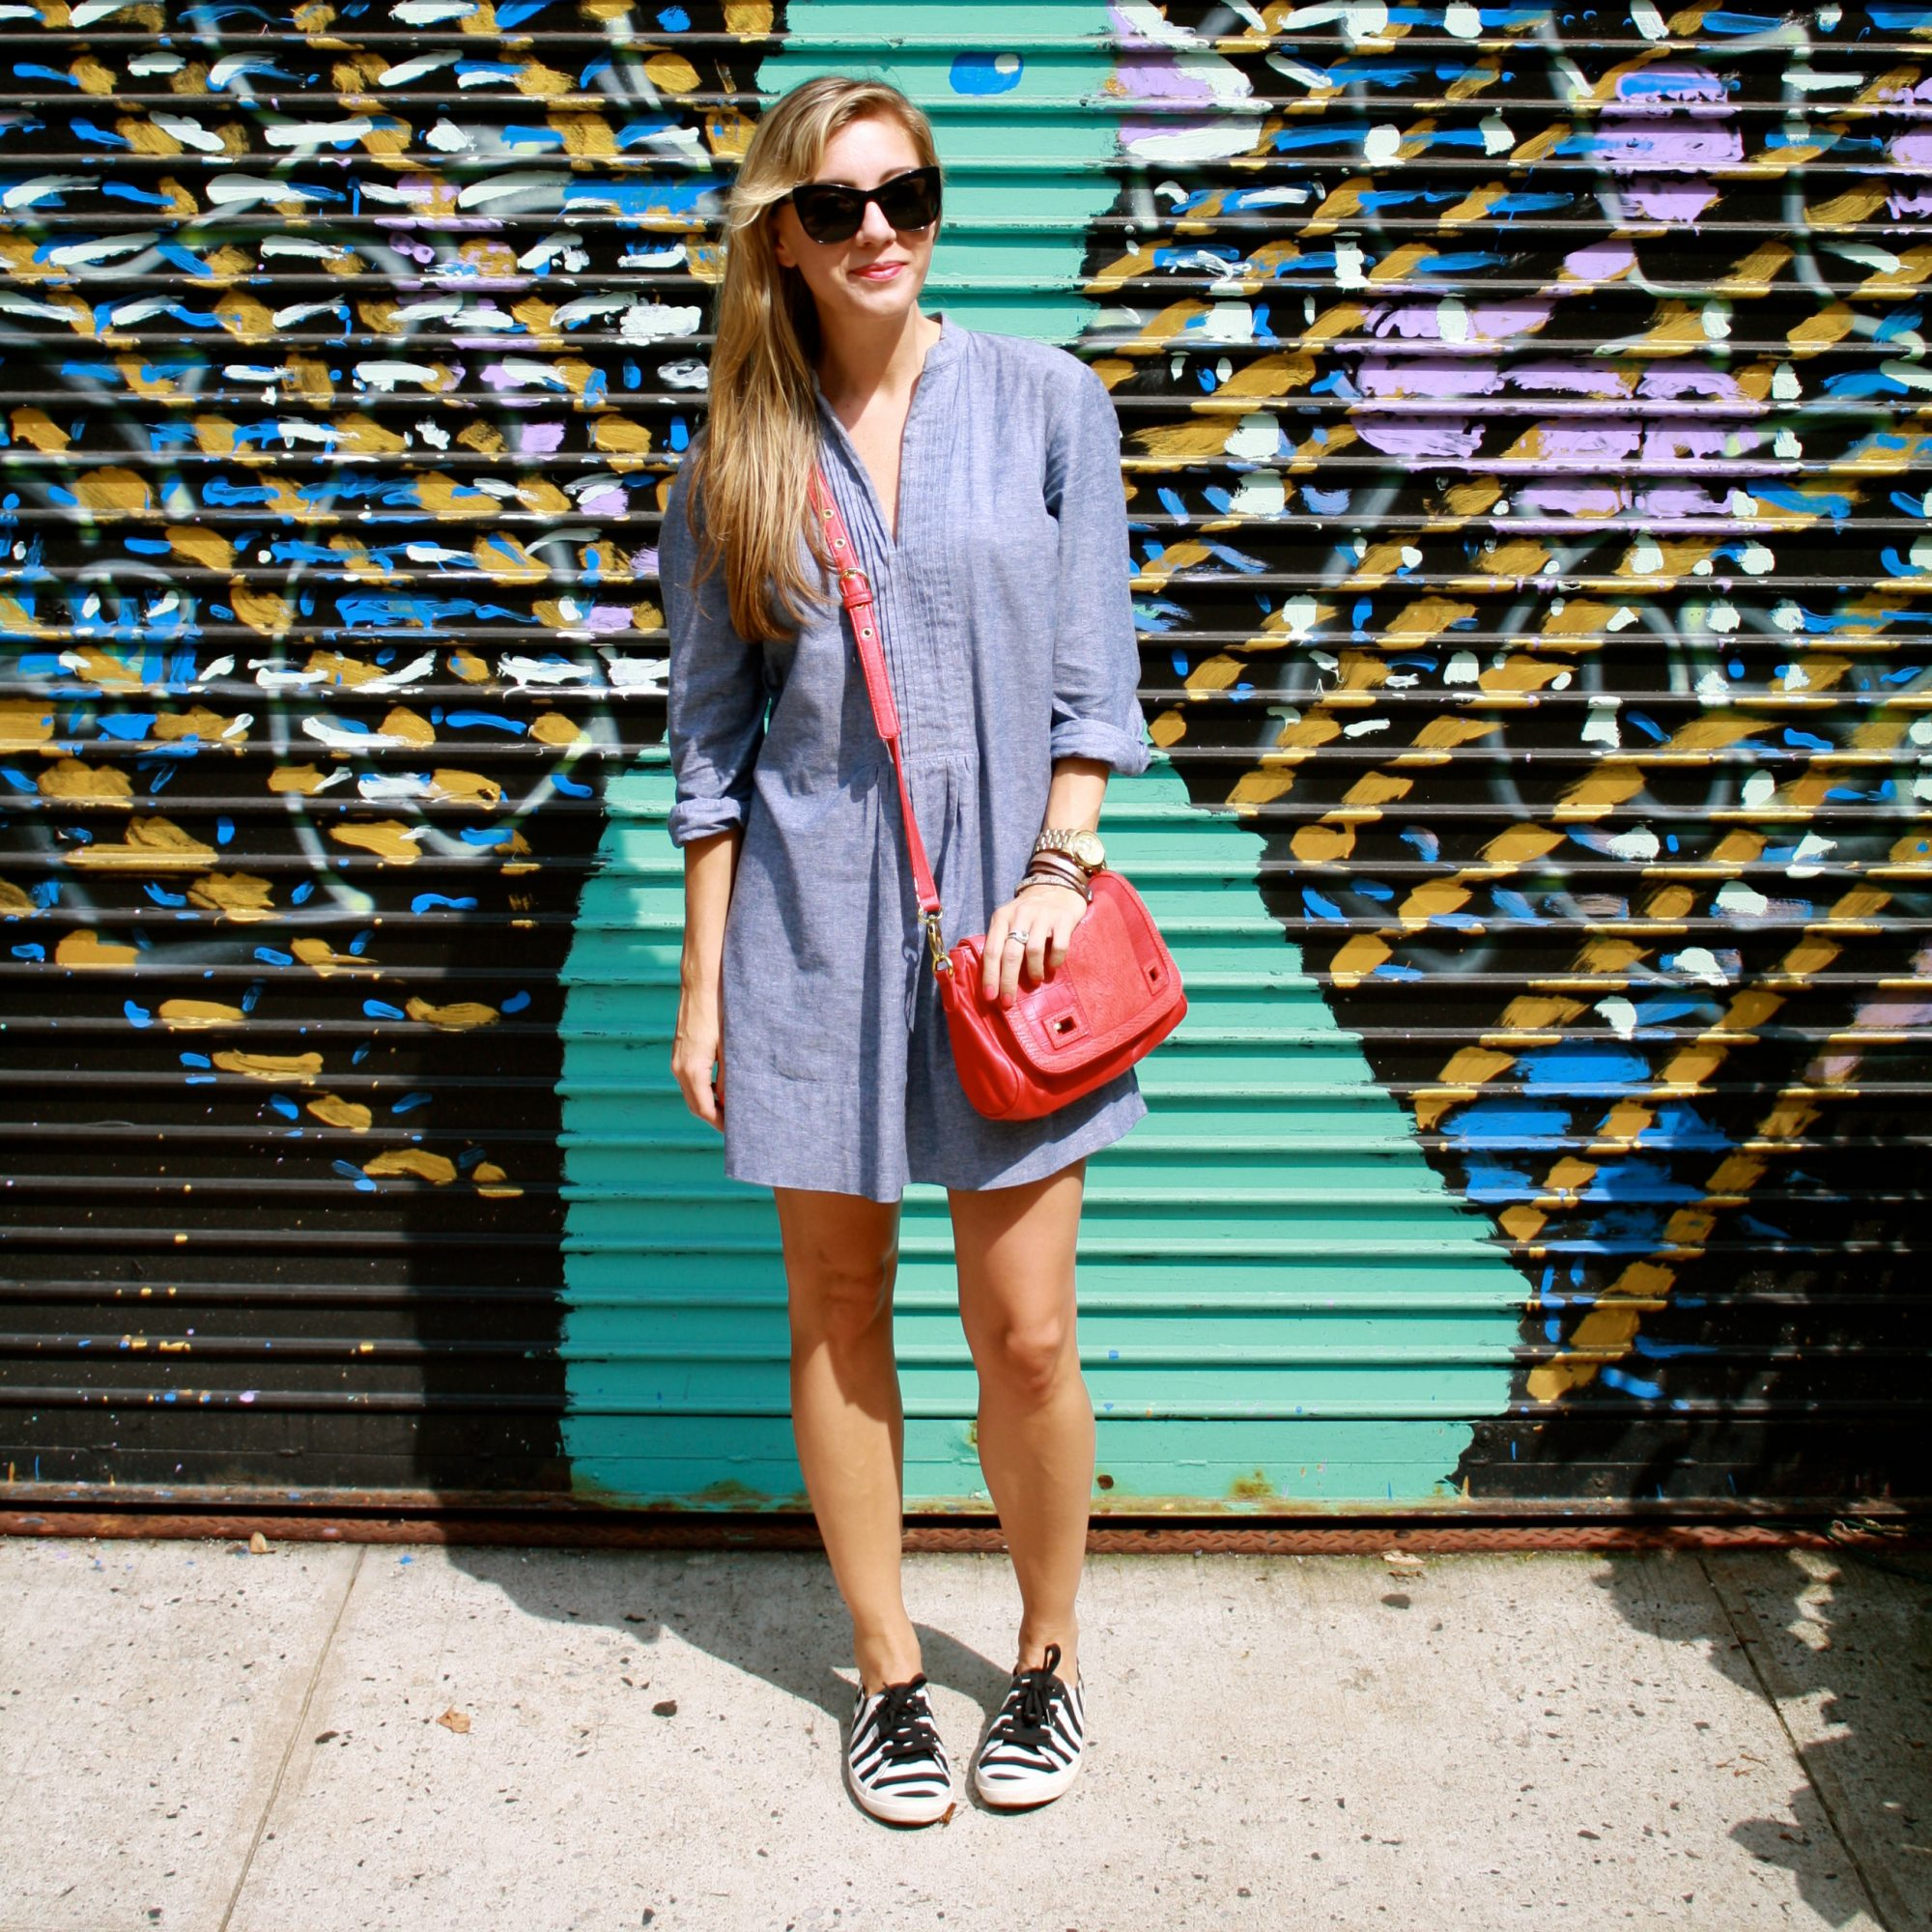 FWX FARMERS MARKET FASHION